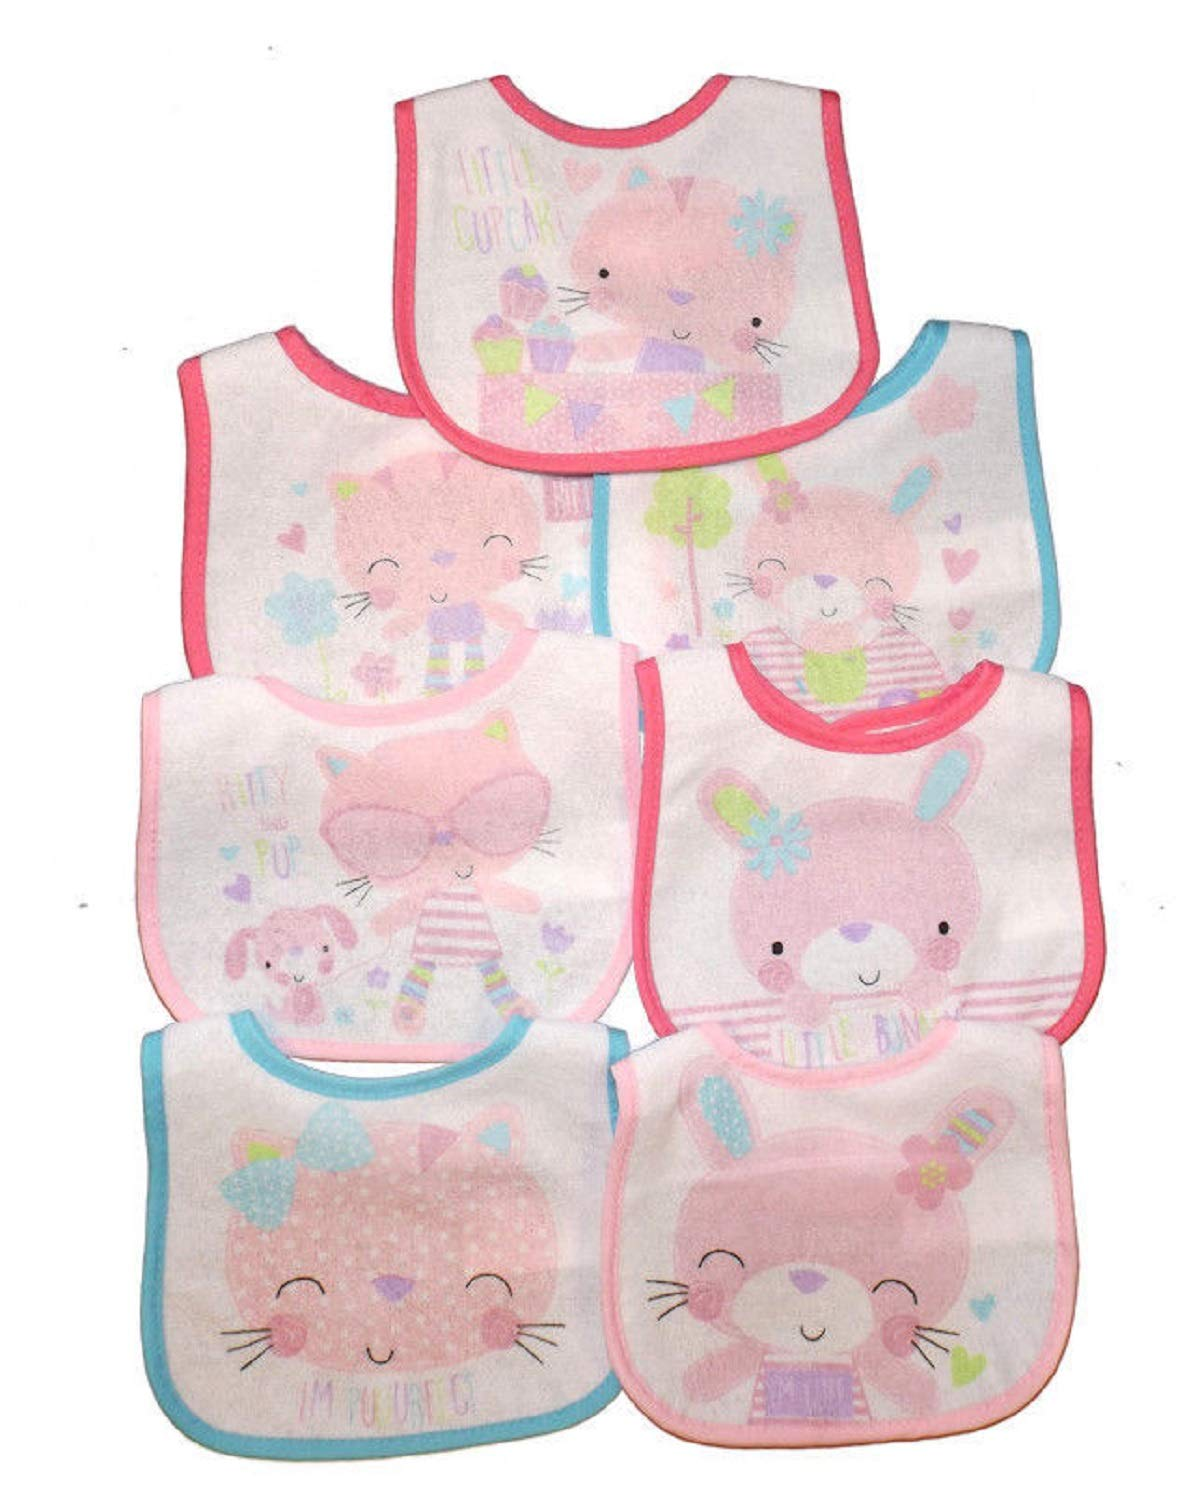 Baby Girl Bibs Days of the Week Waterproof 7 PACK